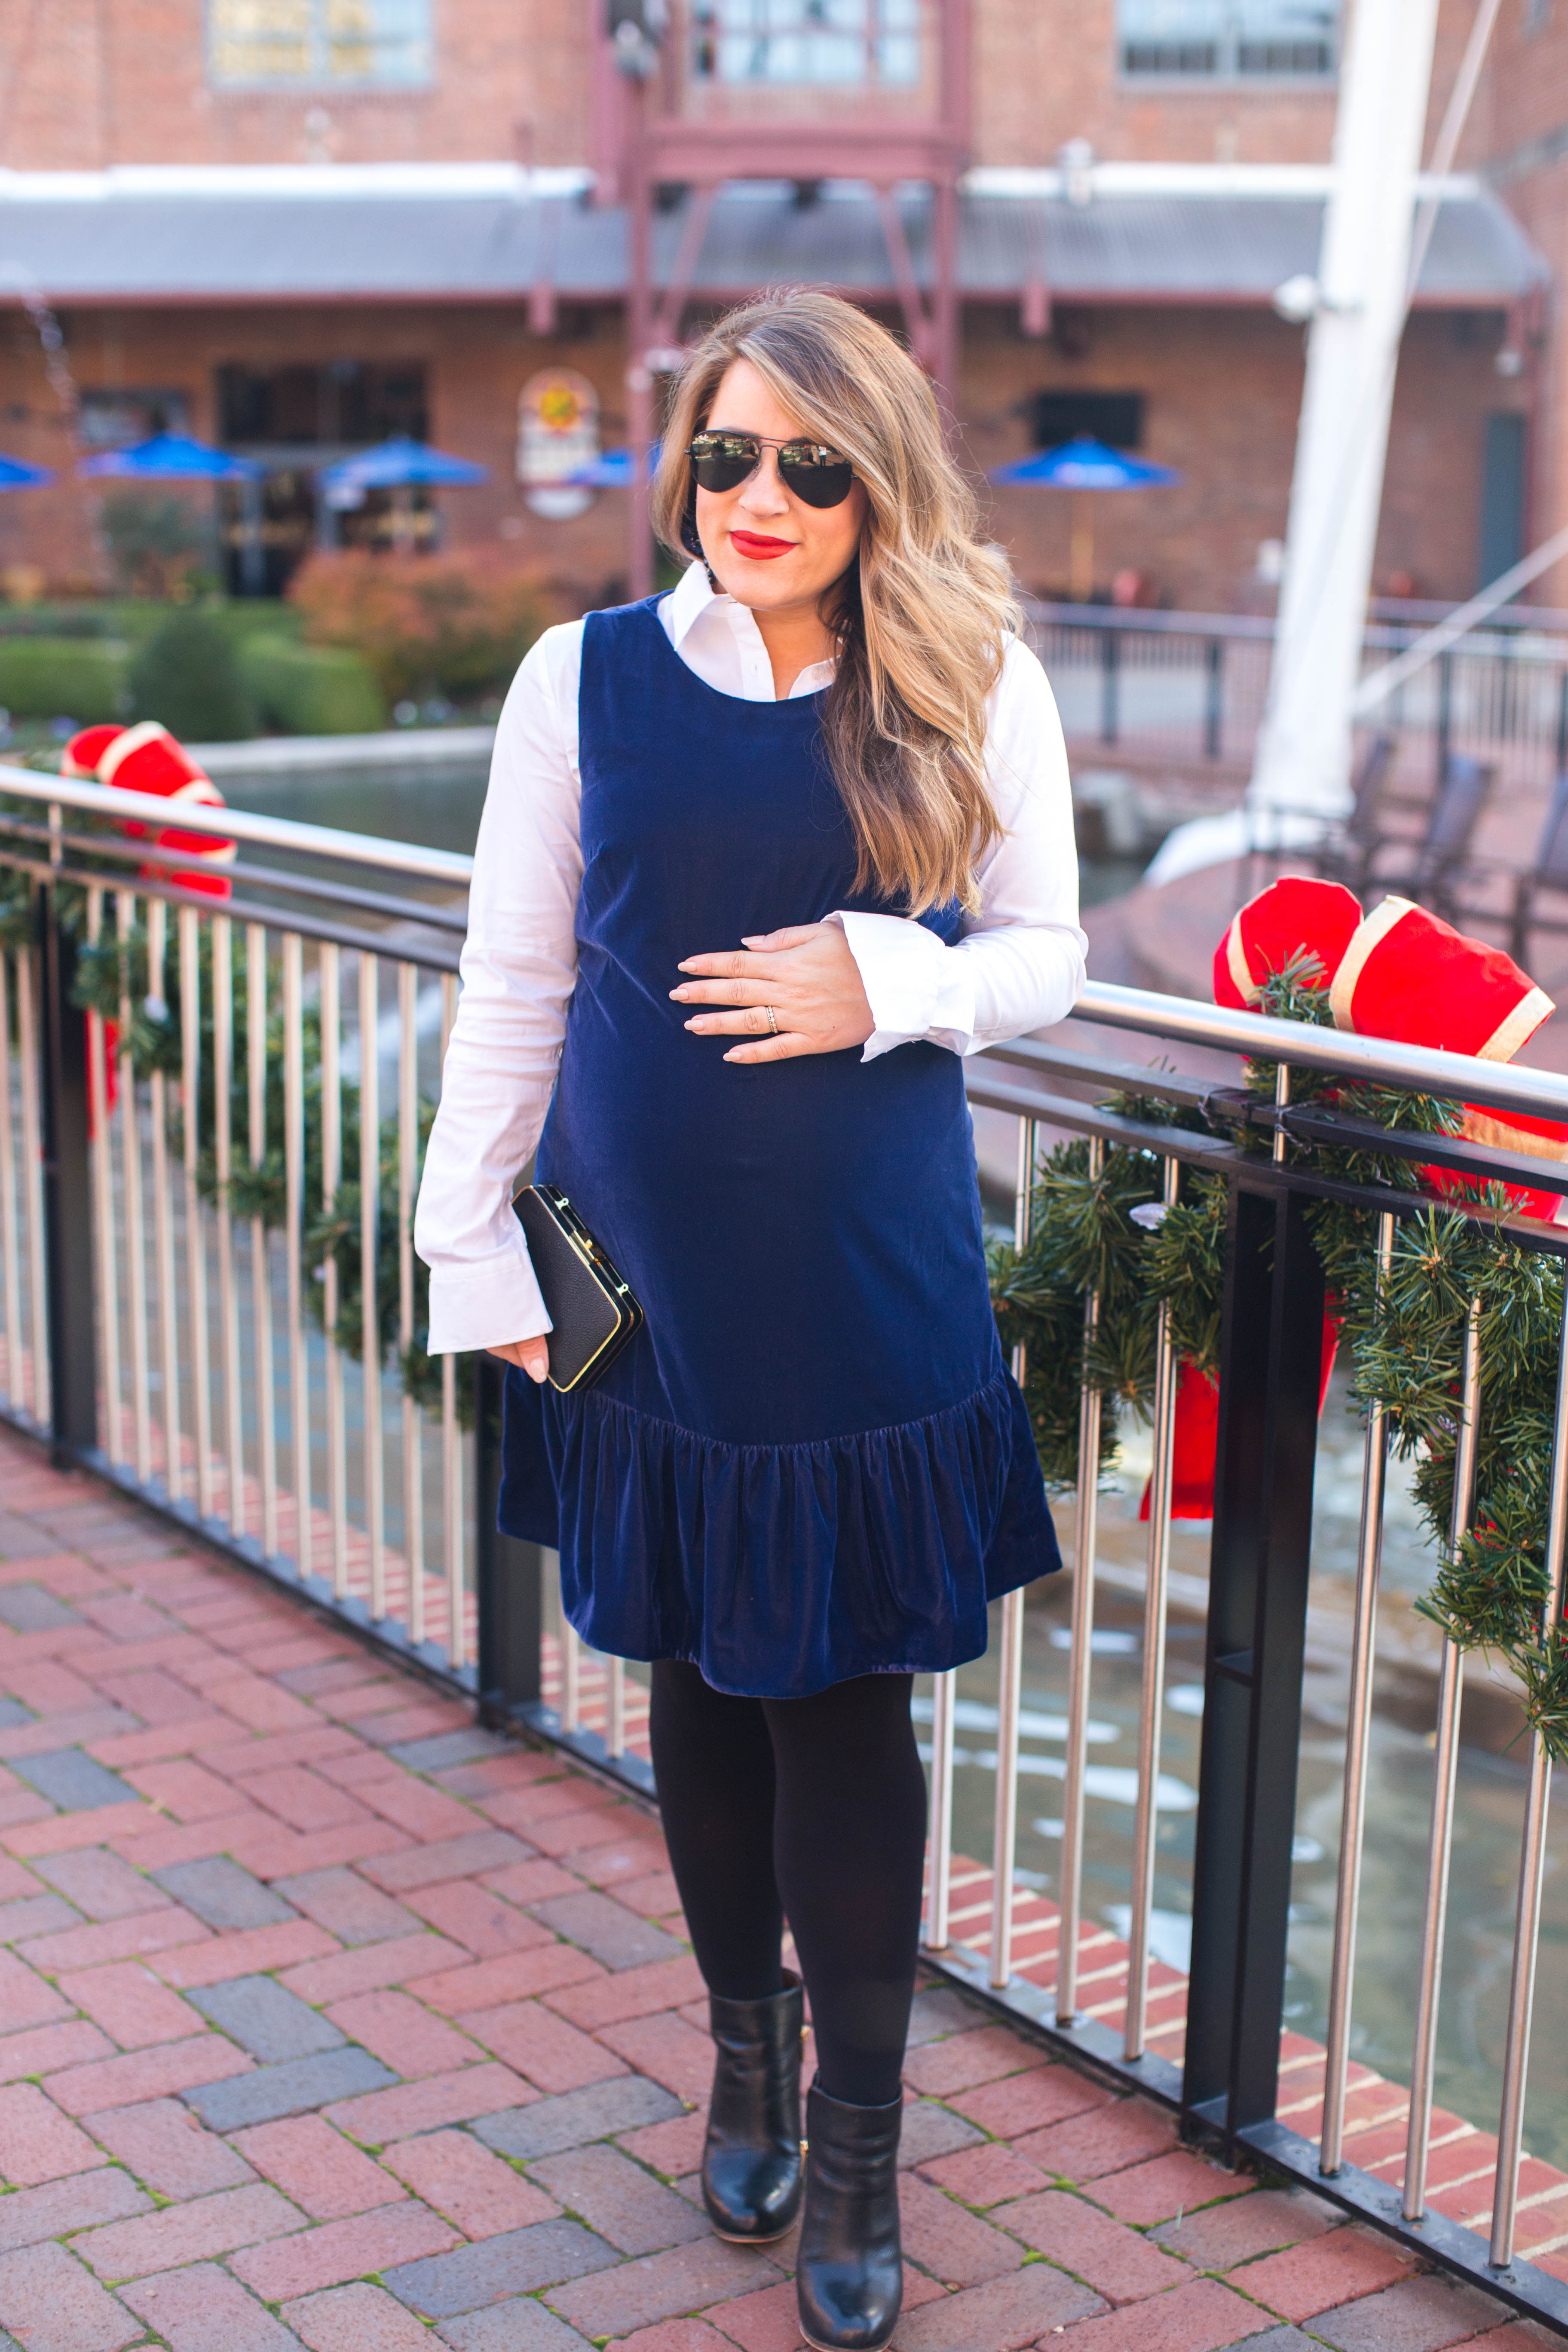 Velvet Party Dress Dressed Down by North Carolina fashion blogger Coffee Beans and Bobby Pins